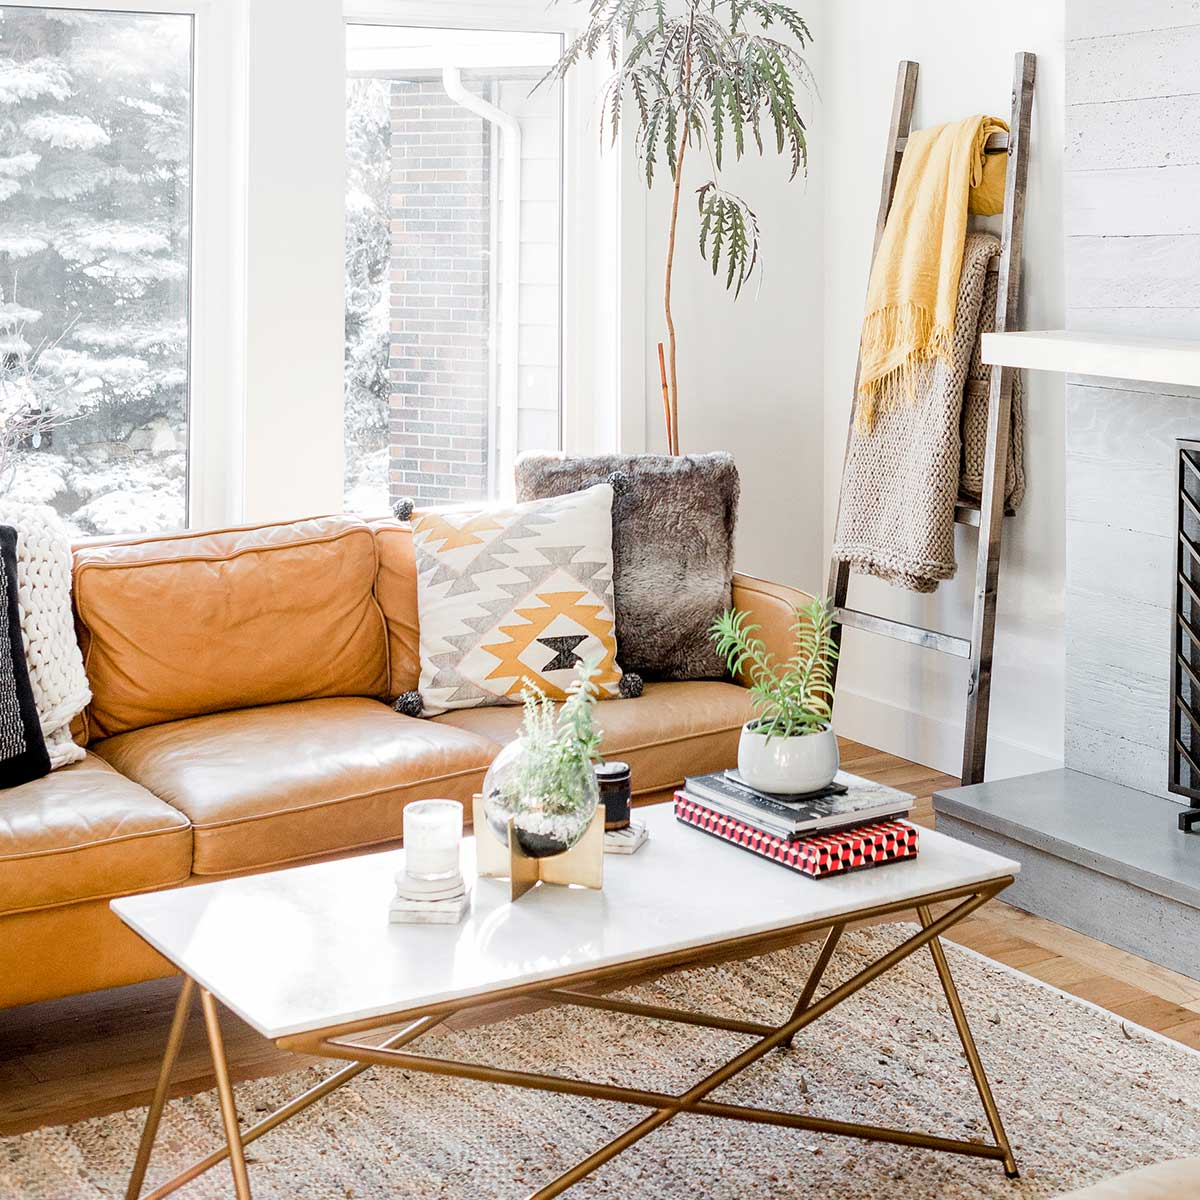 clutter-free white living room with modern coffee table and brown leather couch with cozy pillows and throws